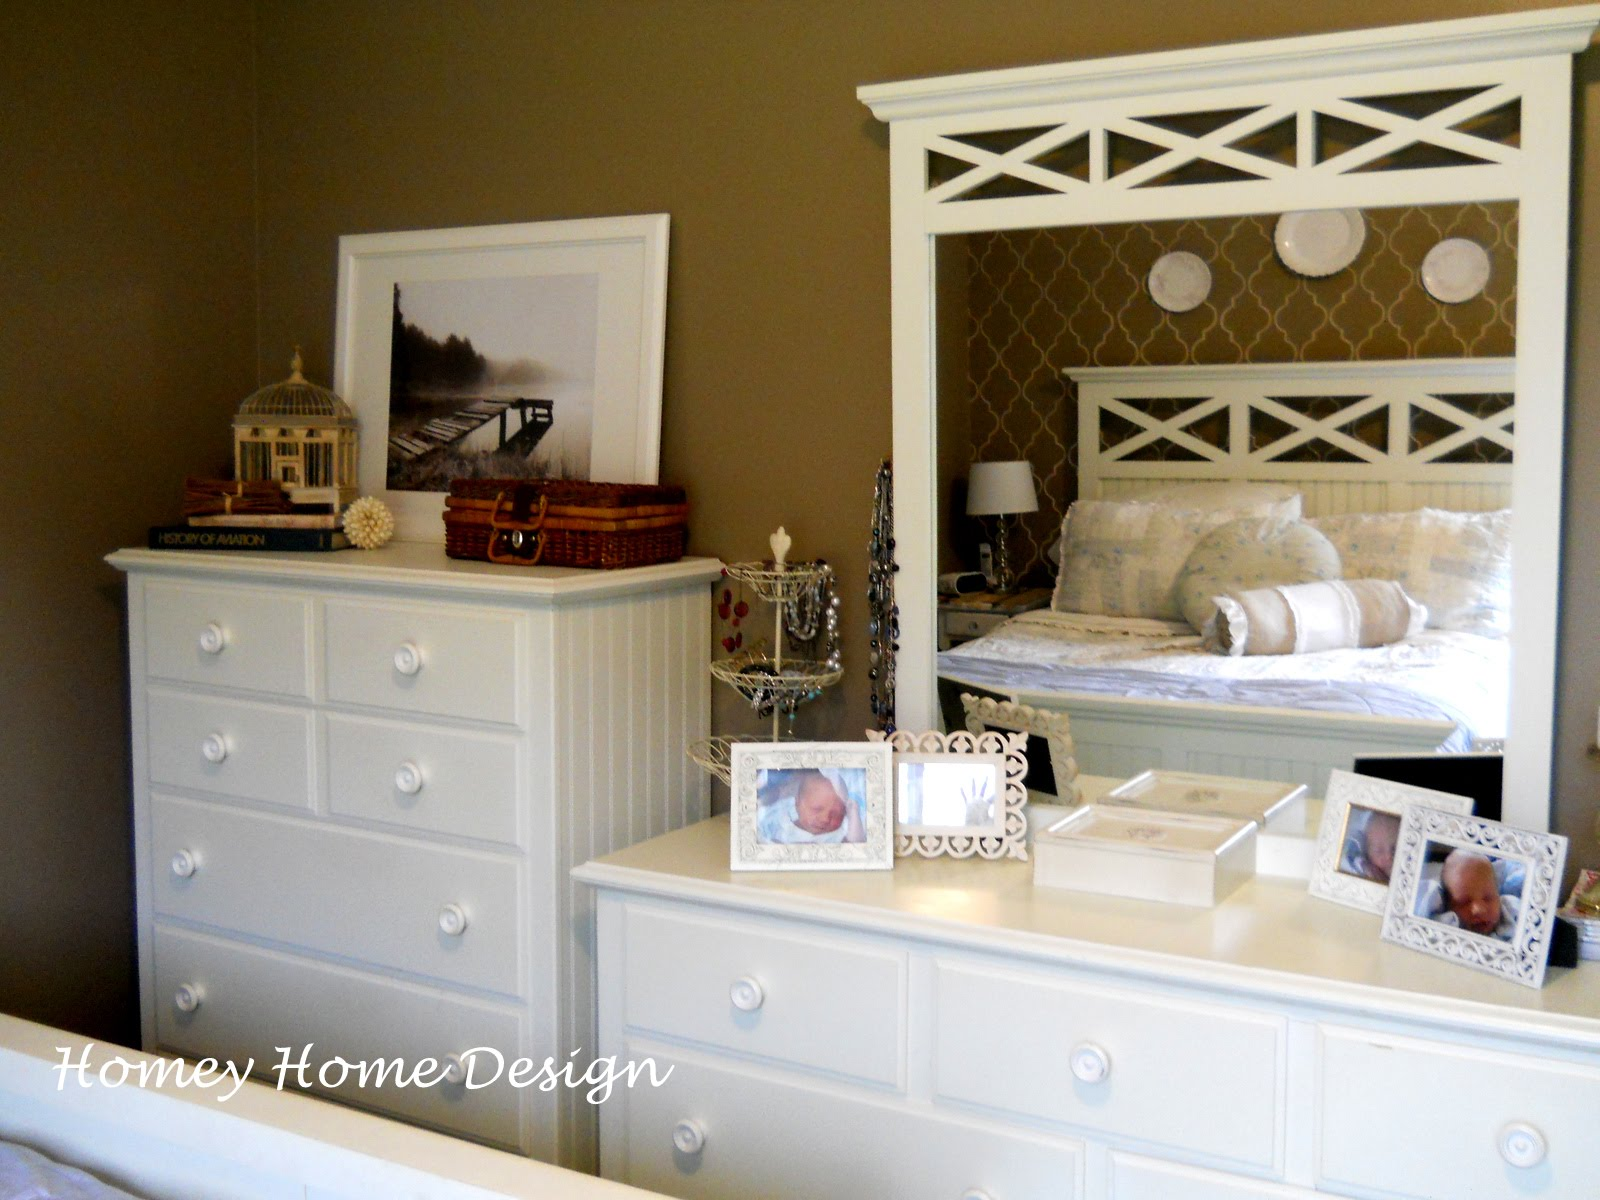 homey home design dresser decor